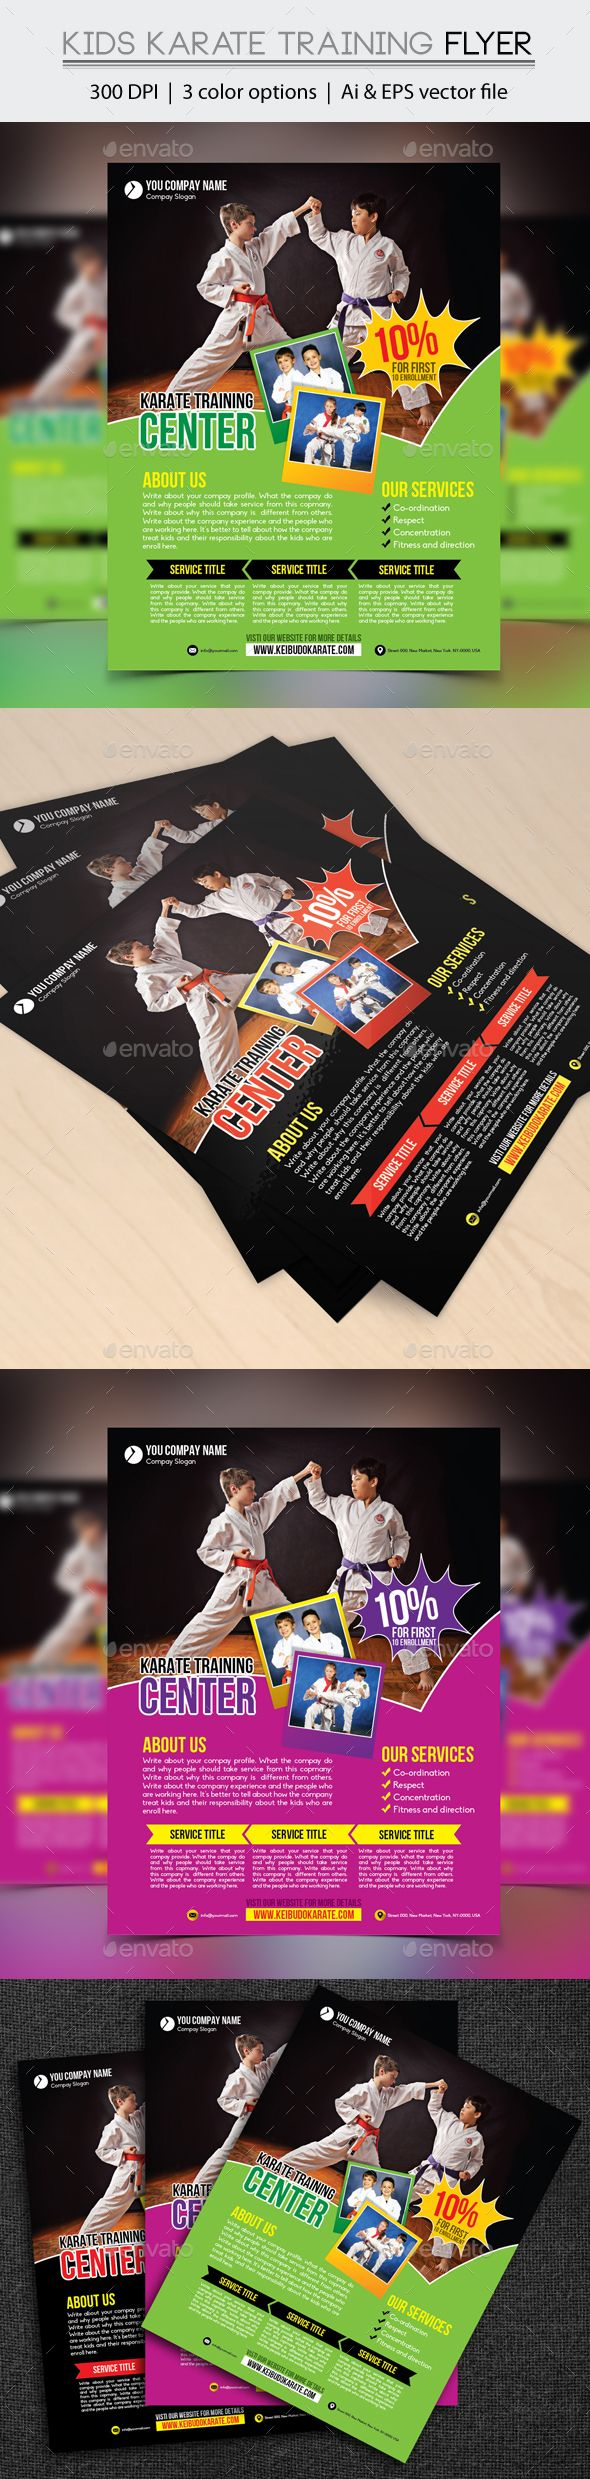 """Kids Karate Training Flyer by design_station Kids Karate Training Flyer (Editable) Specifications: - Size: 8.5""""x11"""" - Bleed: .25\""""- Three color variations (Black, Green & Ma"""